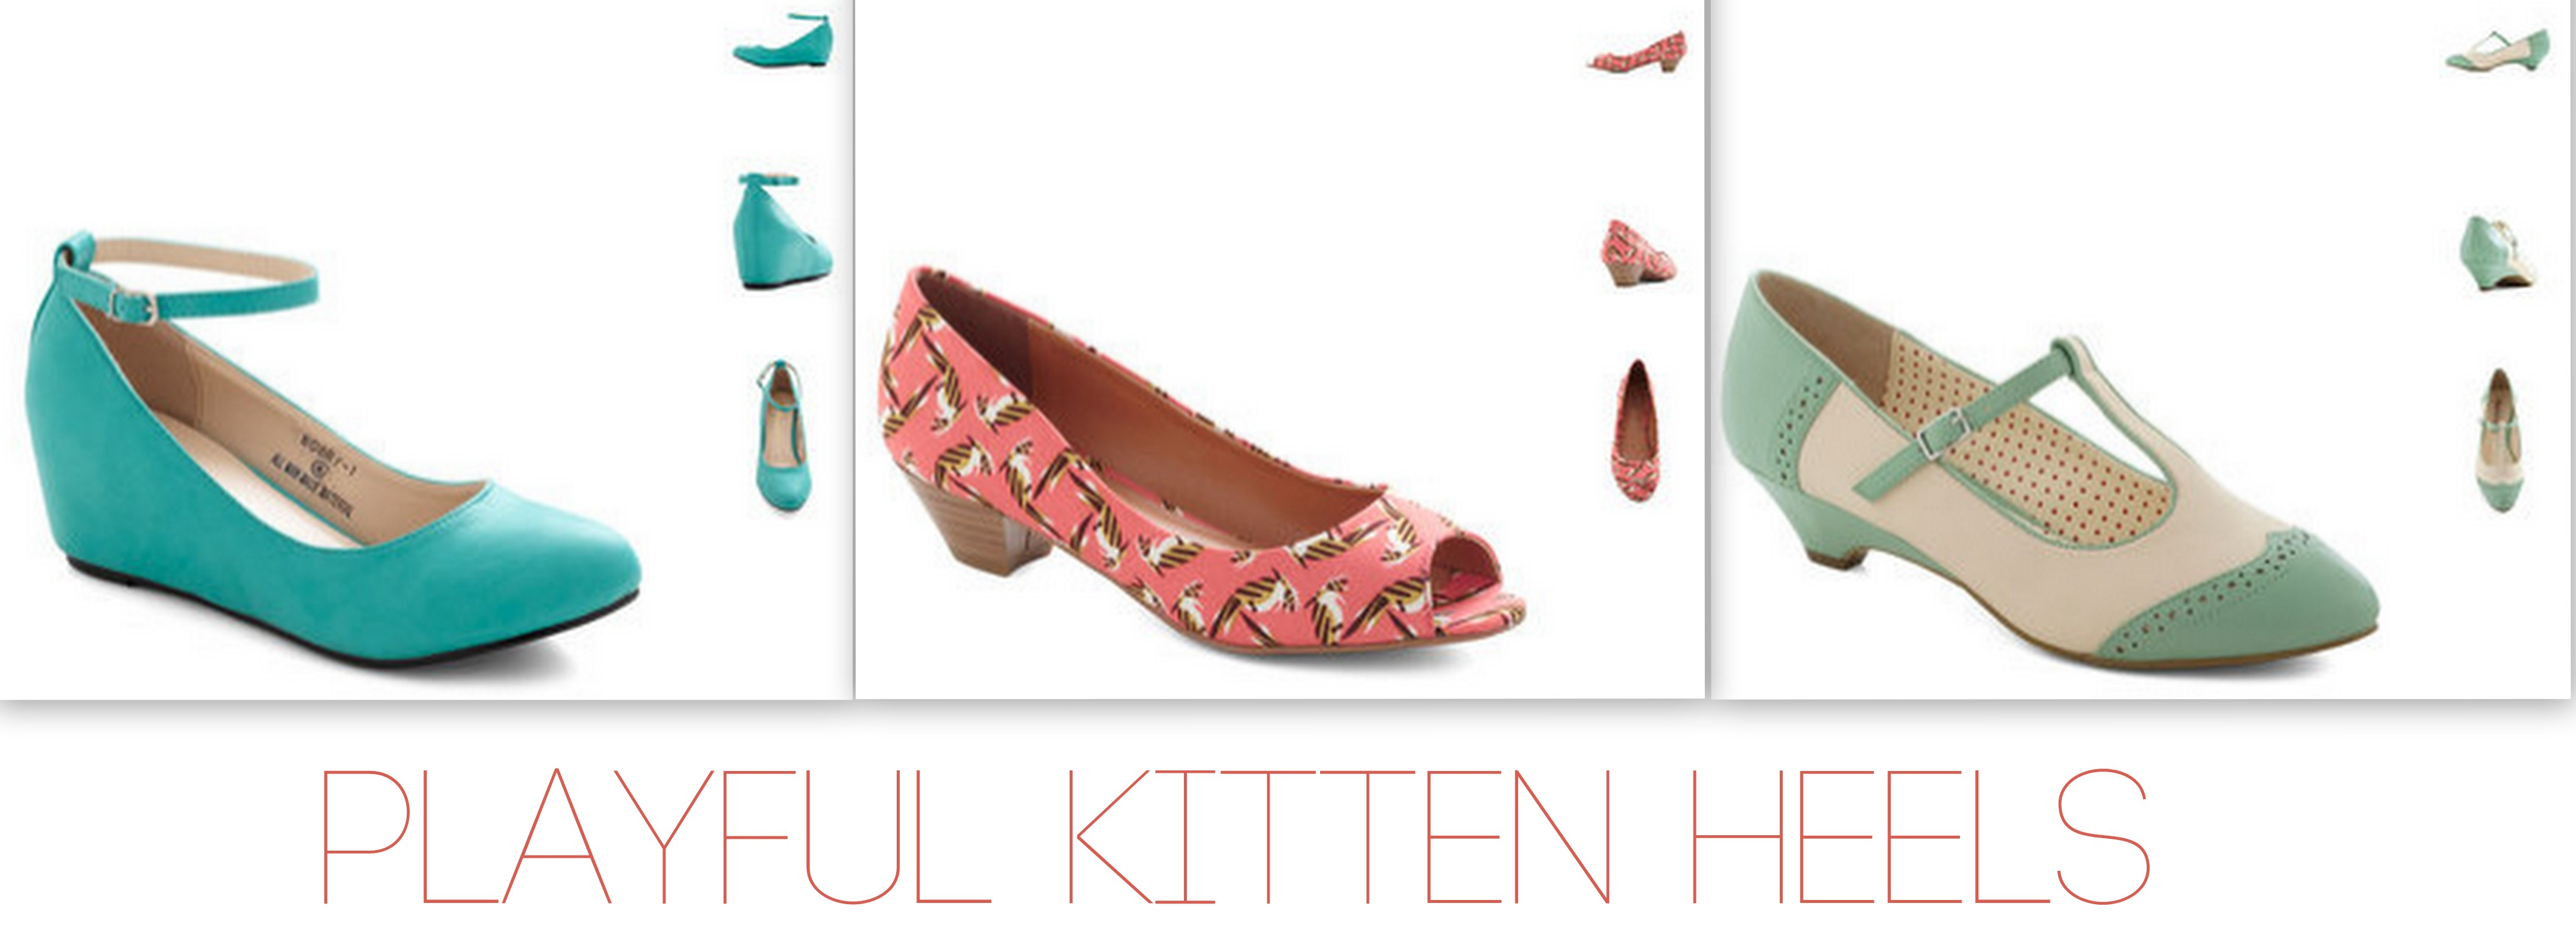 Oxfords, Loafers, and Kitten Heels. Oh my! | Naturale Chronicles